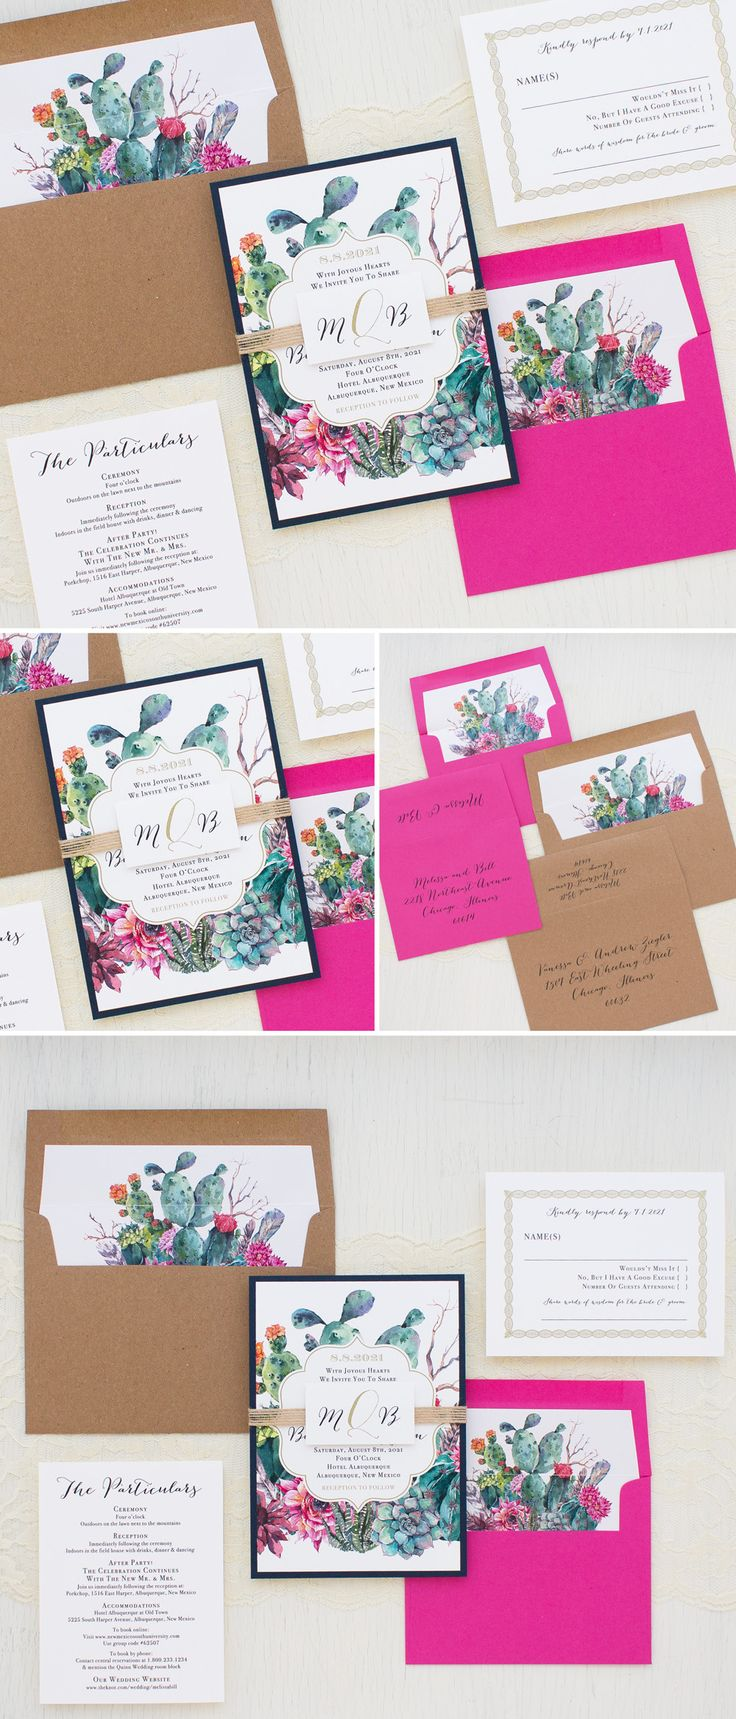 Desert/Cactus Succulent Inspired Wedding Invitations By Beacon Lane. Complete with matching envelope liners, burlap monogram tag, navy blue, hot pink and kraft.